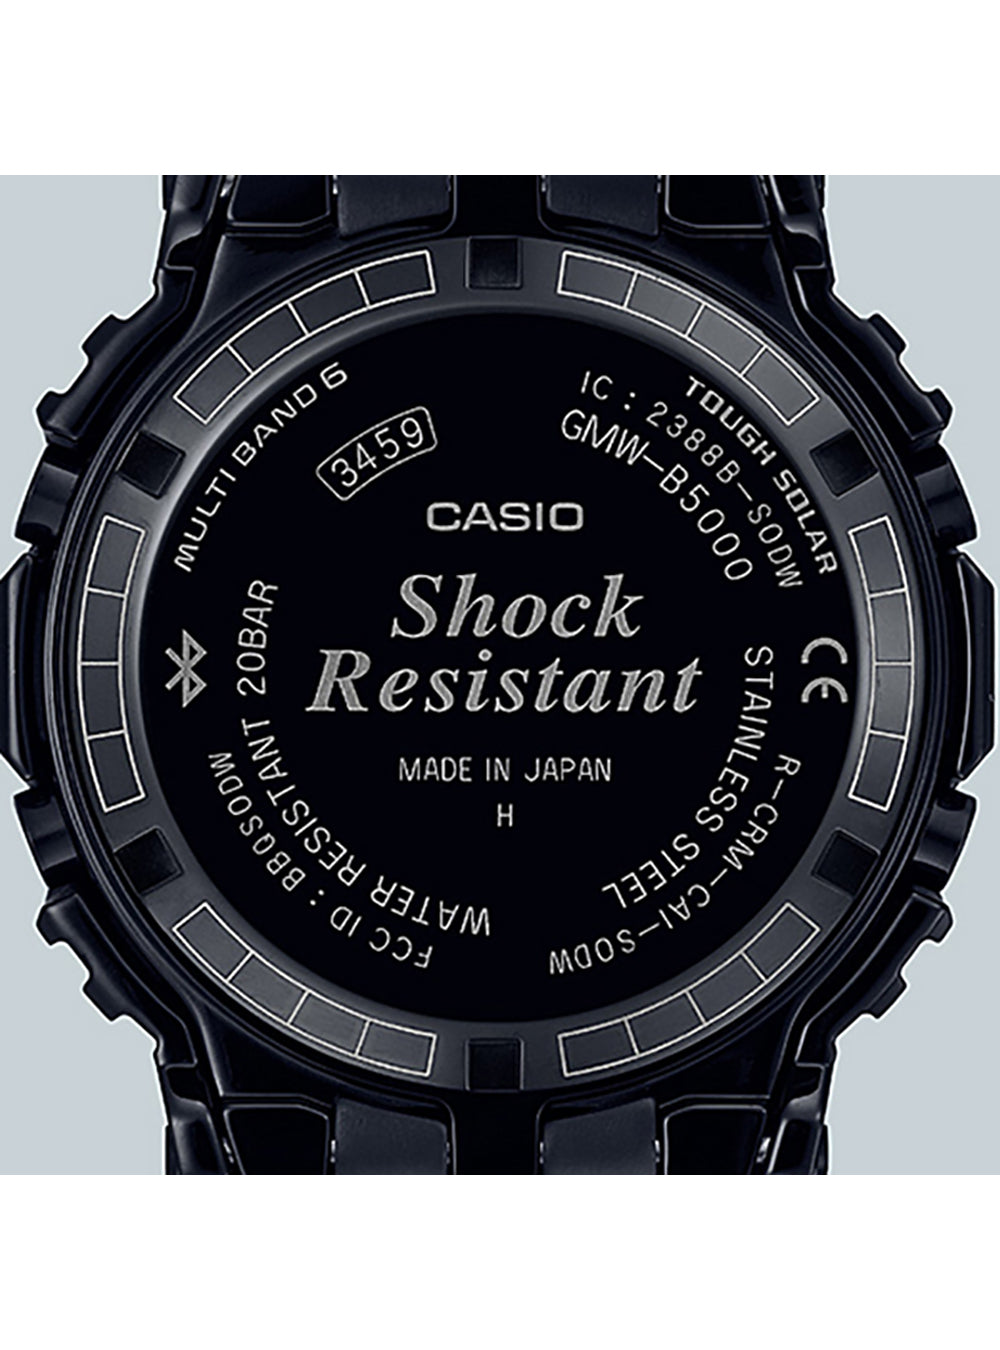 CASIO G-SHOCK GMW-B5000CS-1JR MADE IN JAPAN JDM